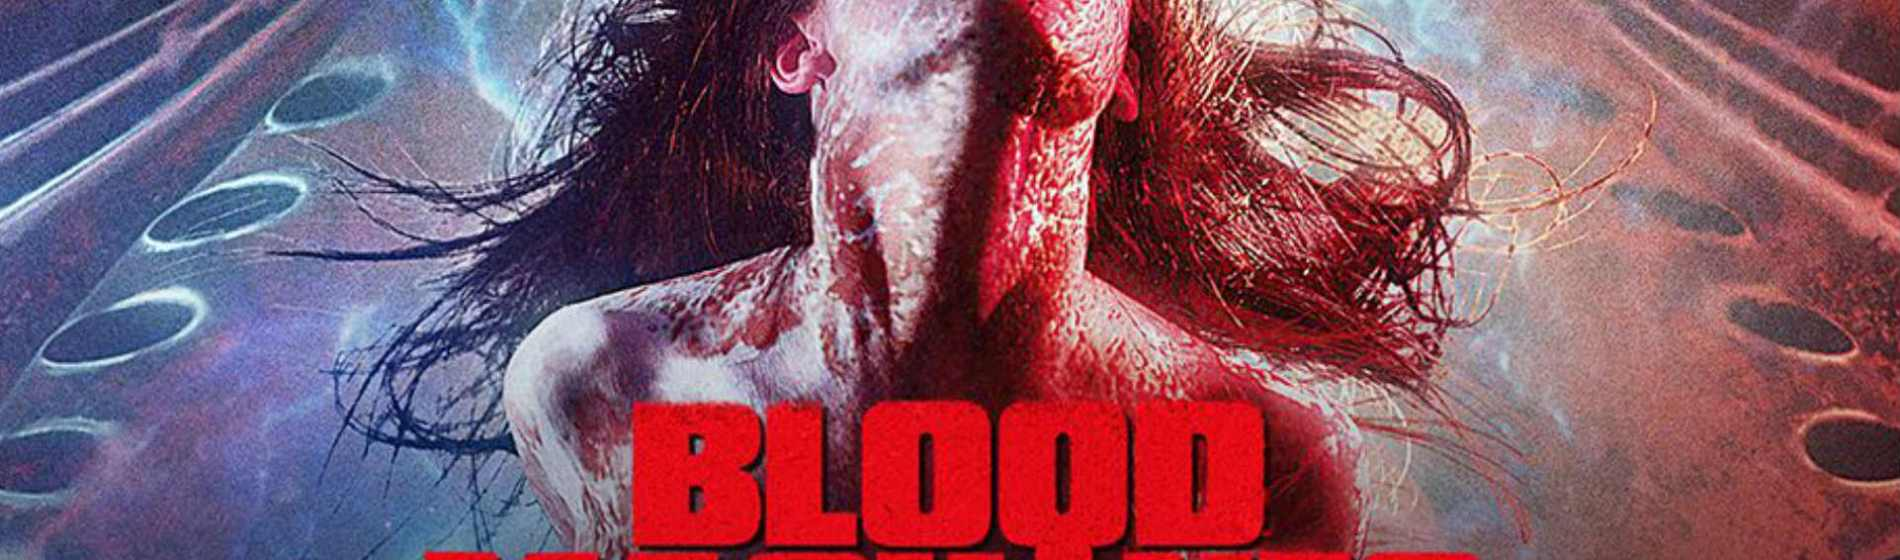 blood-machines-feature-image